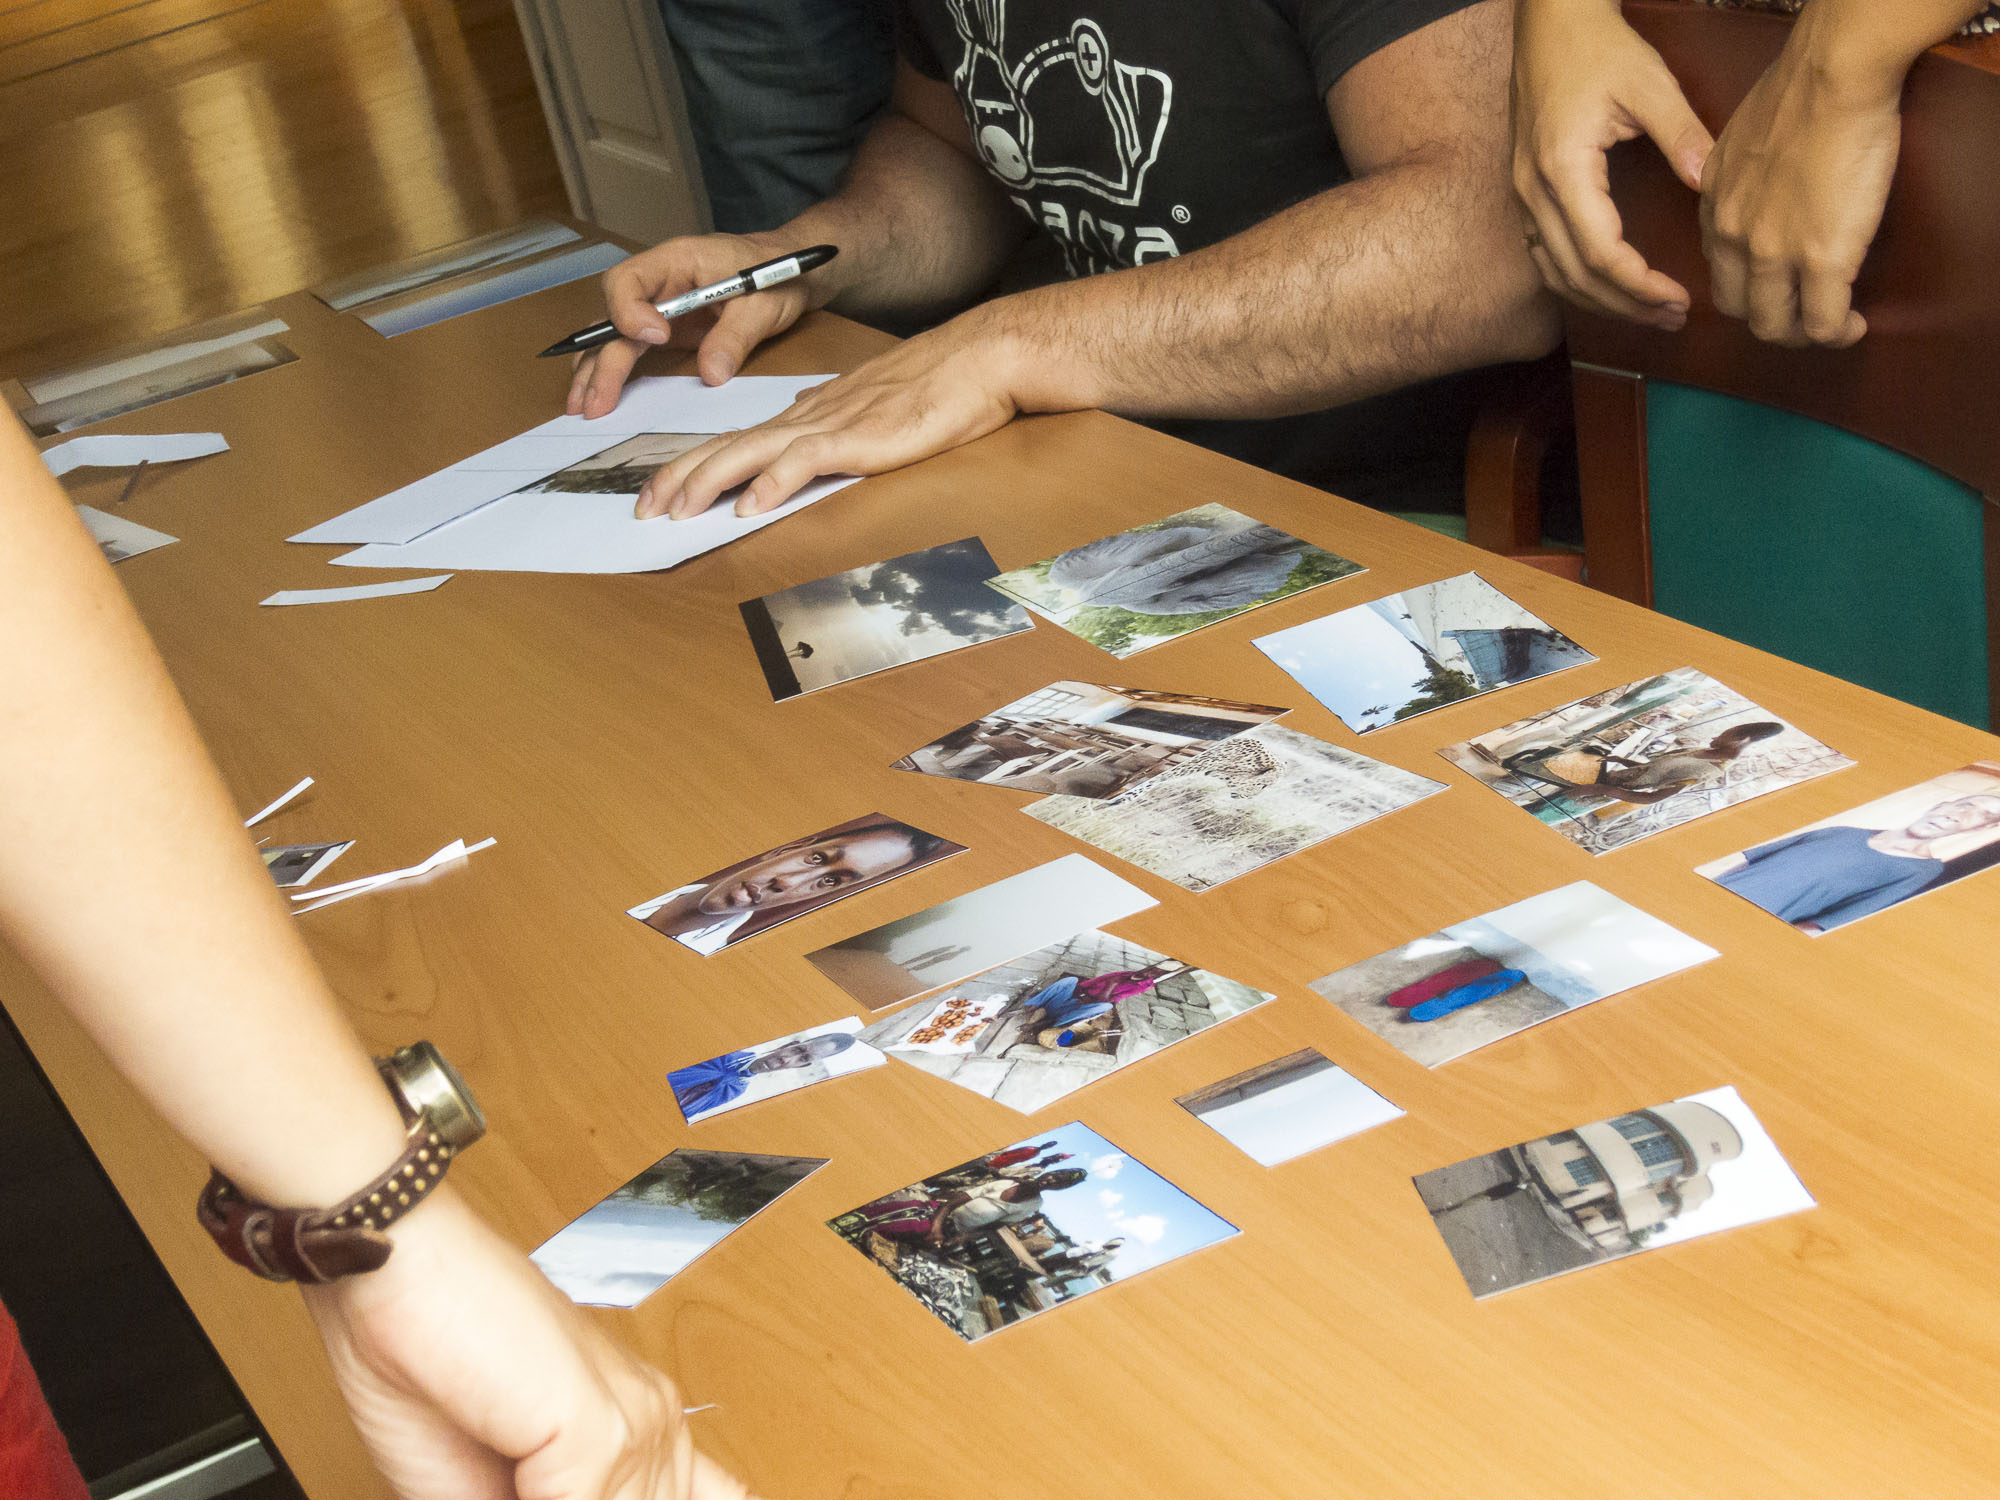 Editing and sequencing photography course with Tomás Correa